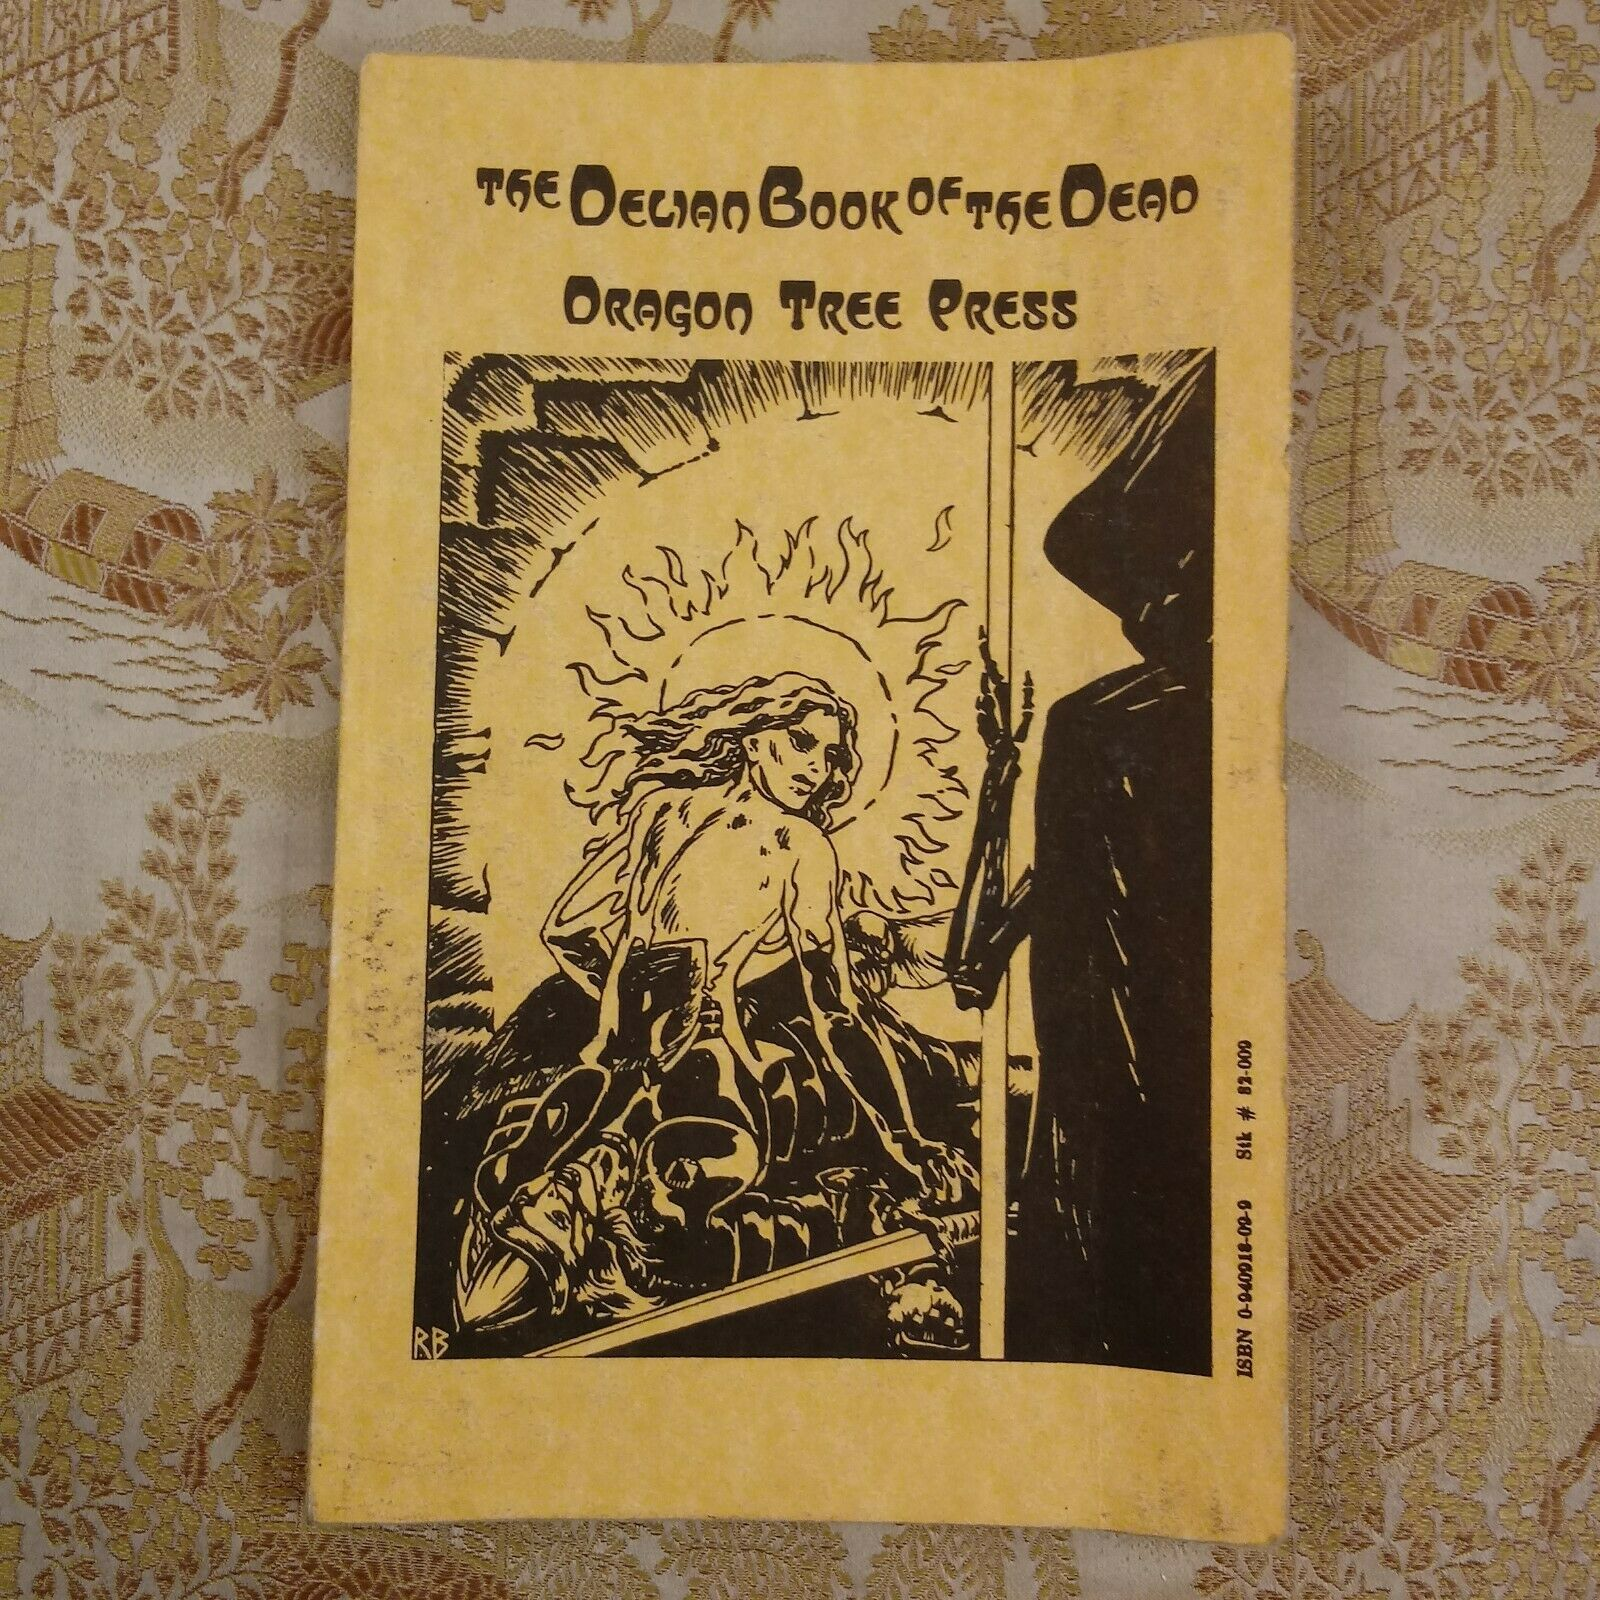 Delian Book of the Dead, Dragon Tree Fantasy RPG (1st Edition, VG) 1986